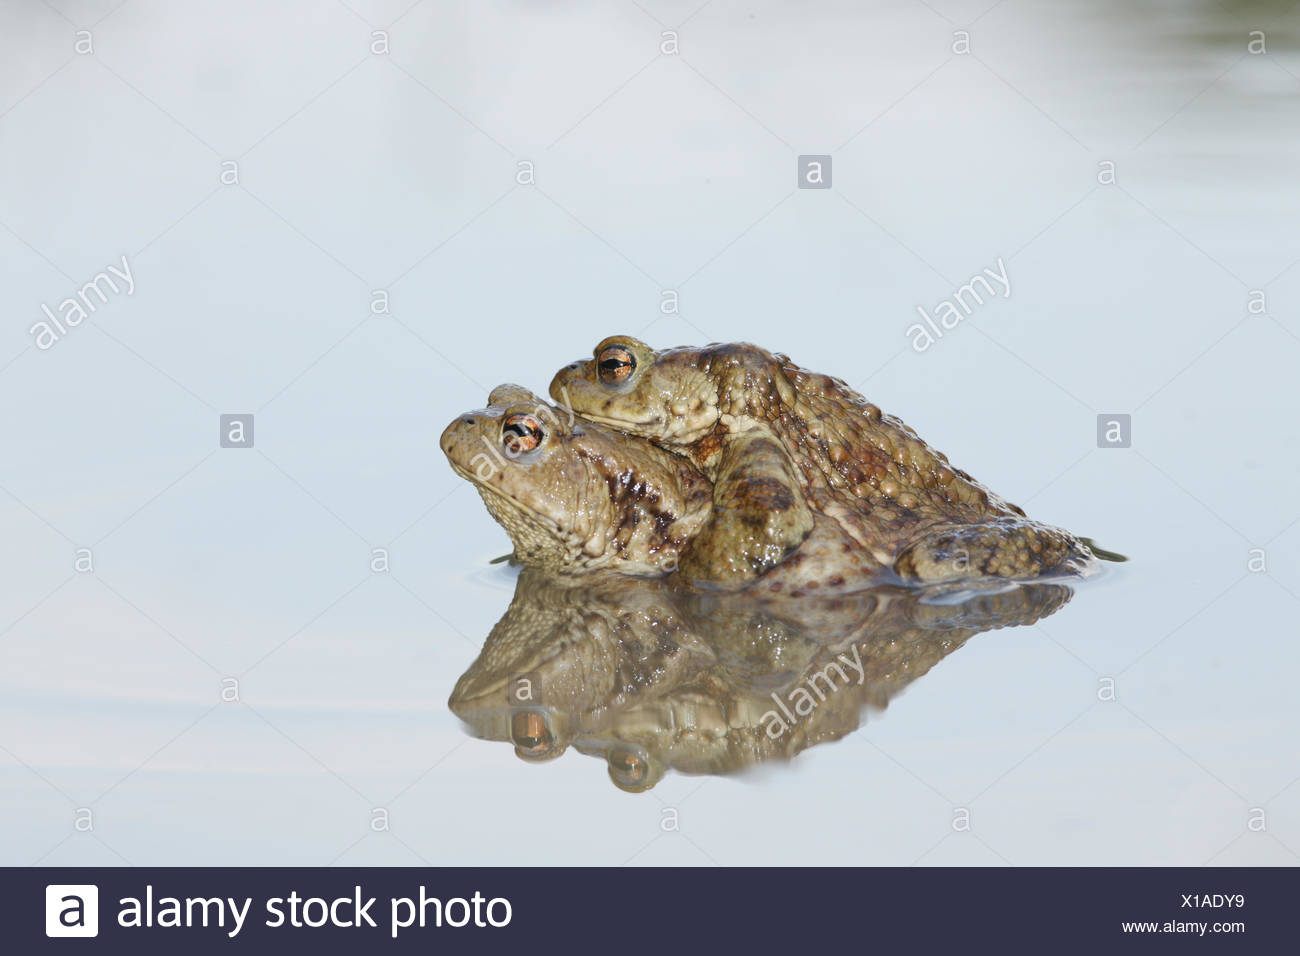 Common toads, Bufo bufo, in mating position called amplexus. Stock Photo